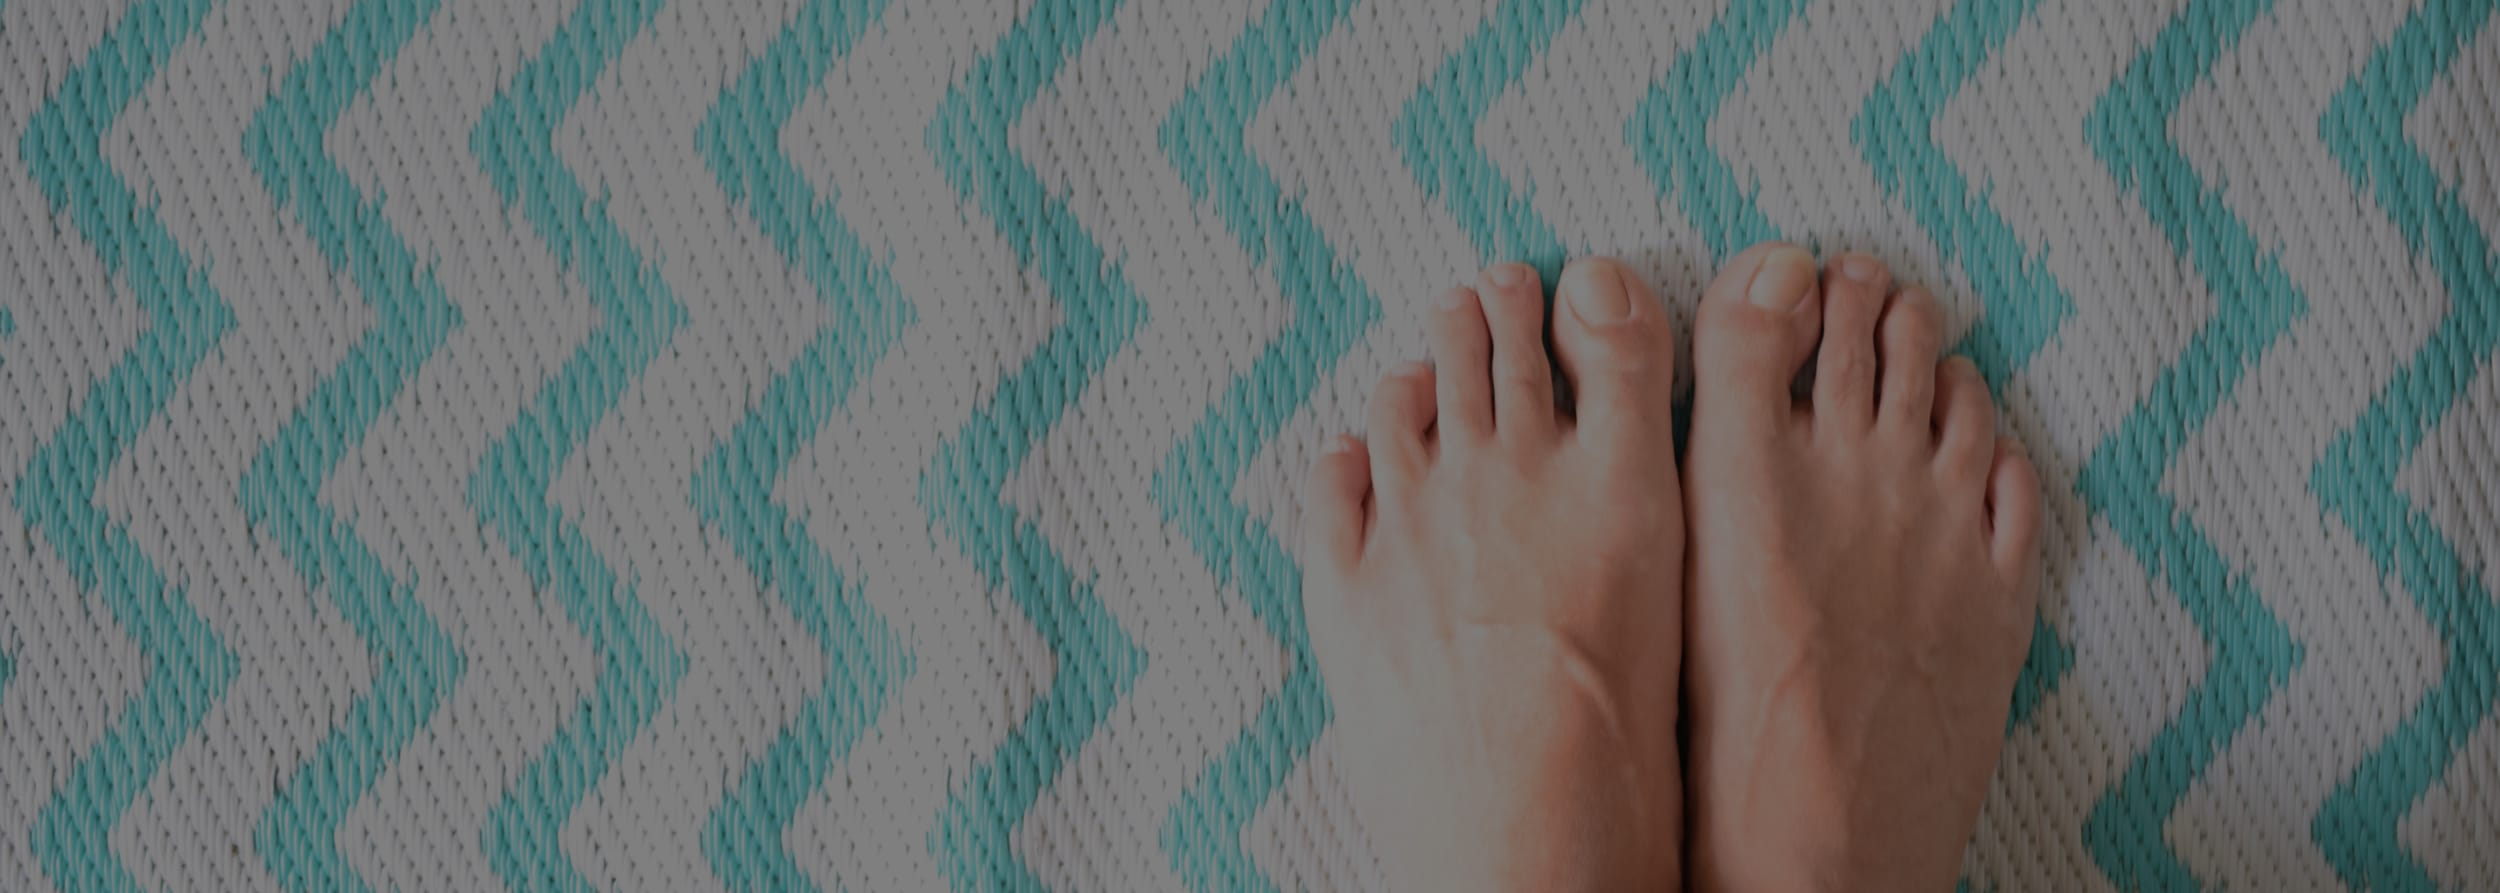 Podiatrist Leads header image